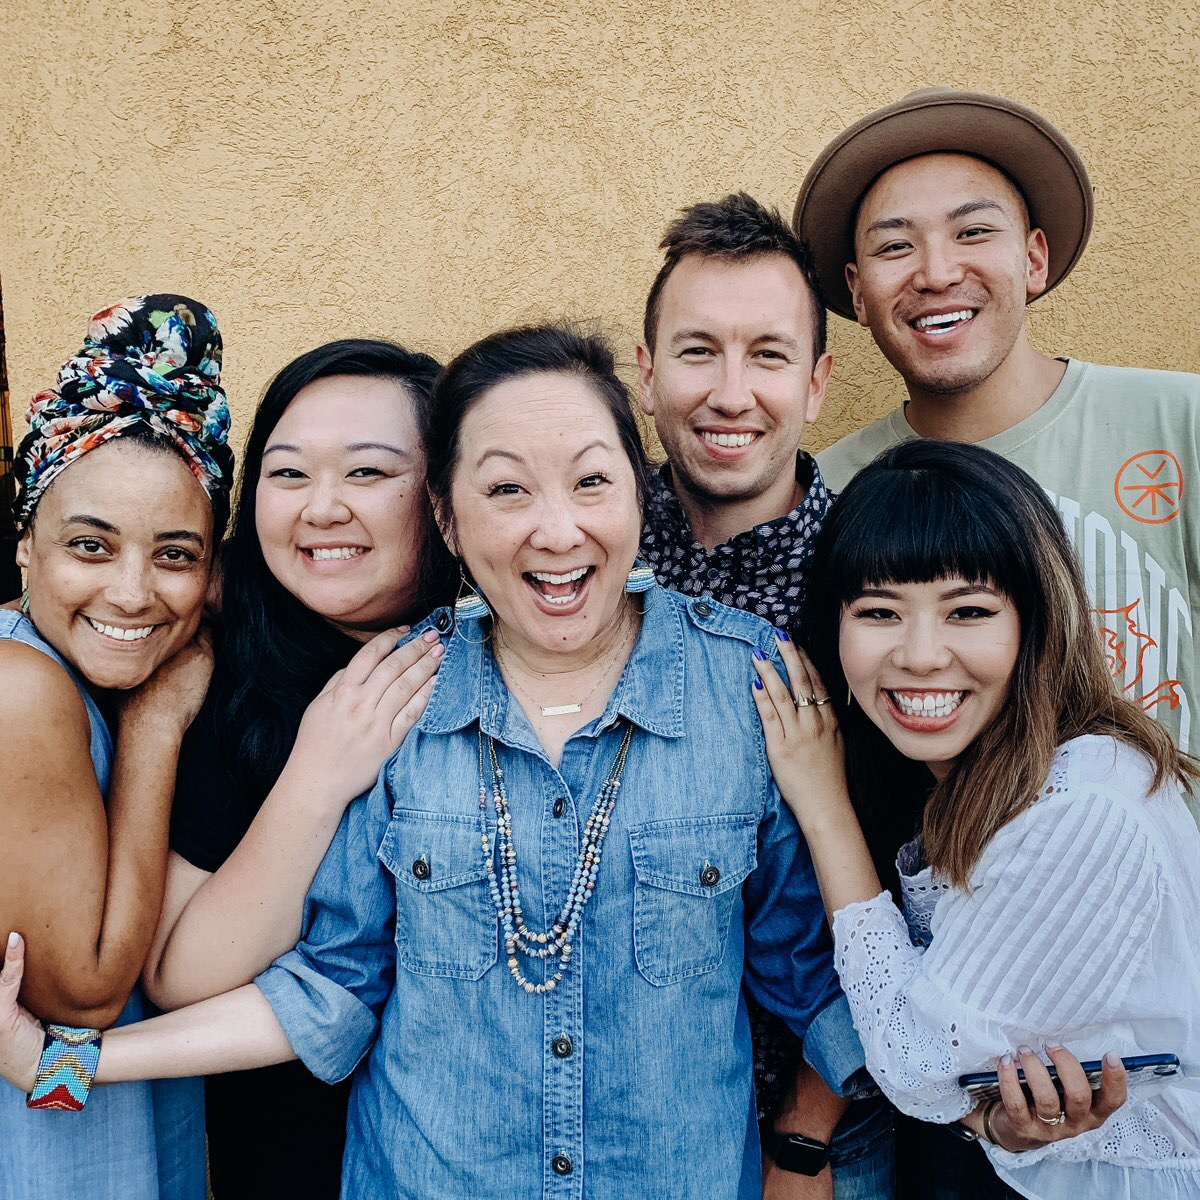 Chantel Runnels: Executive Producer, Vicki Fan: Complier and Creator of Show Notes, me: host, Aaron Kretzmann: Sound Engineer, Jocelyn Chung: Logo Designer, Kenny Wong: Director of Design and Branding (not pictured: Joe Pash with Passion Net Productions: Composer of Original Music